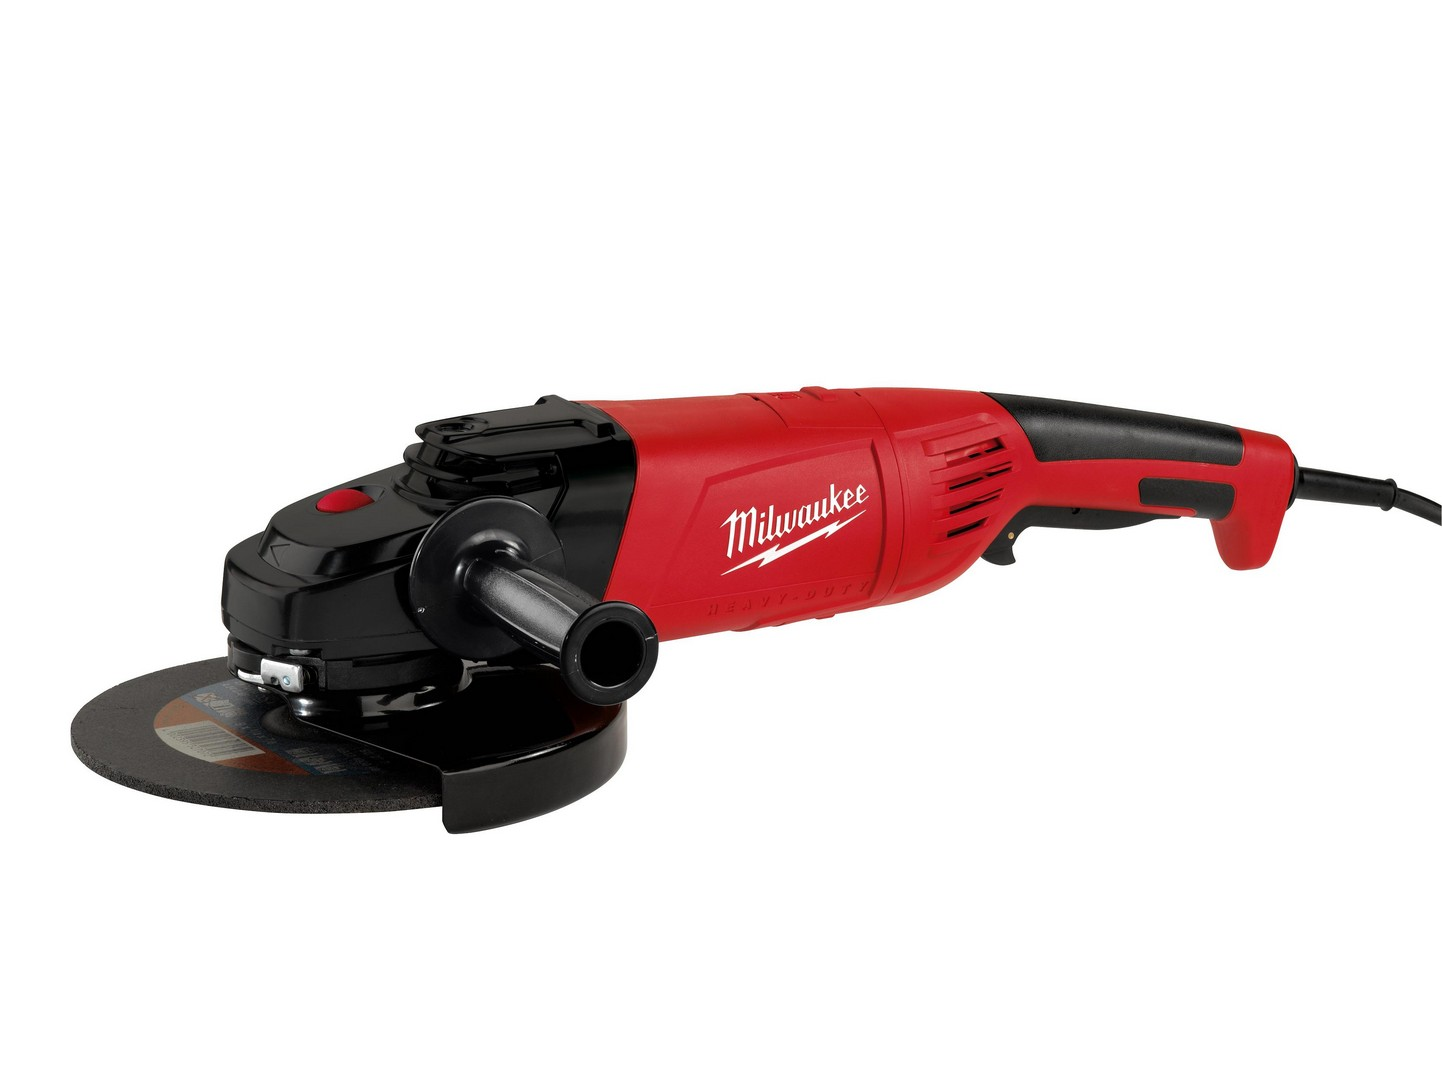 Milwaukee AG21-230 Heavy Duty Angle Grinder 230mm